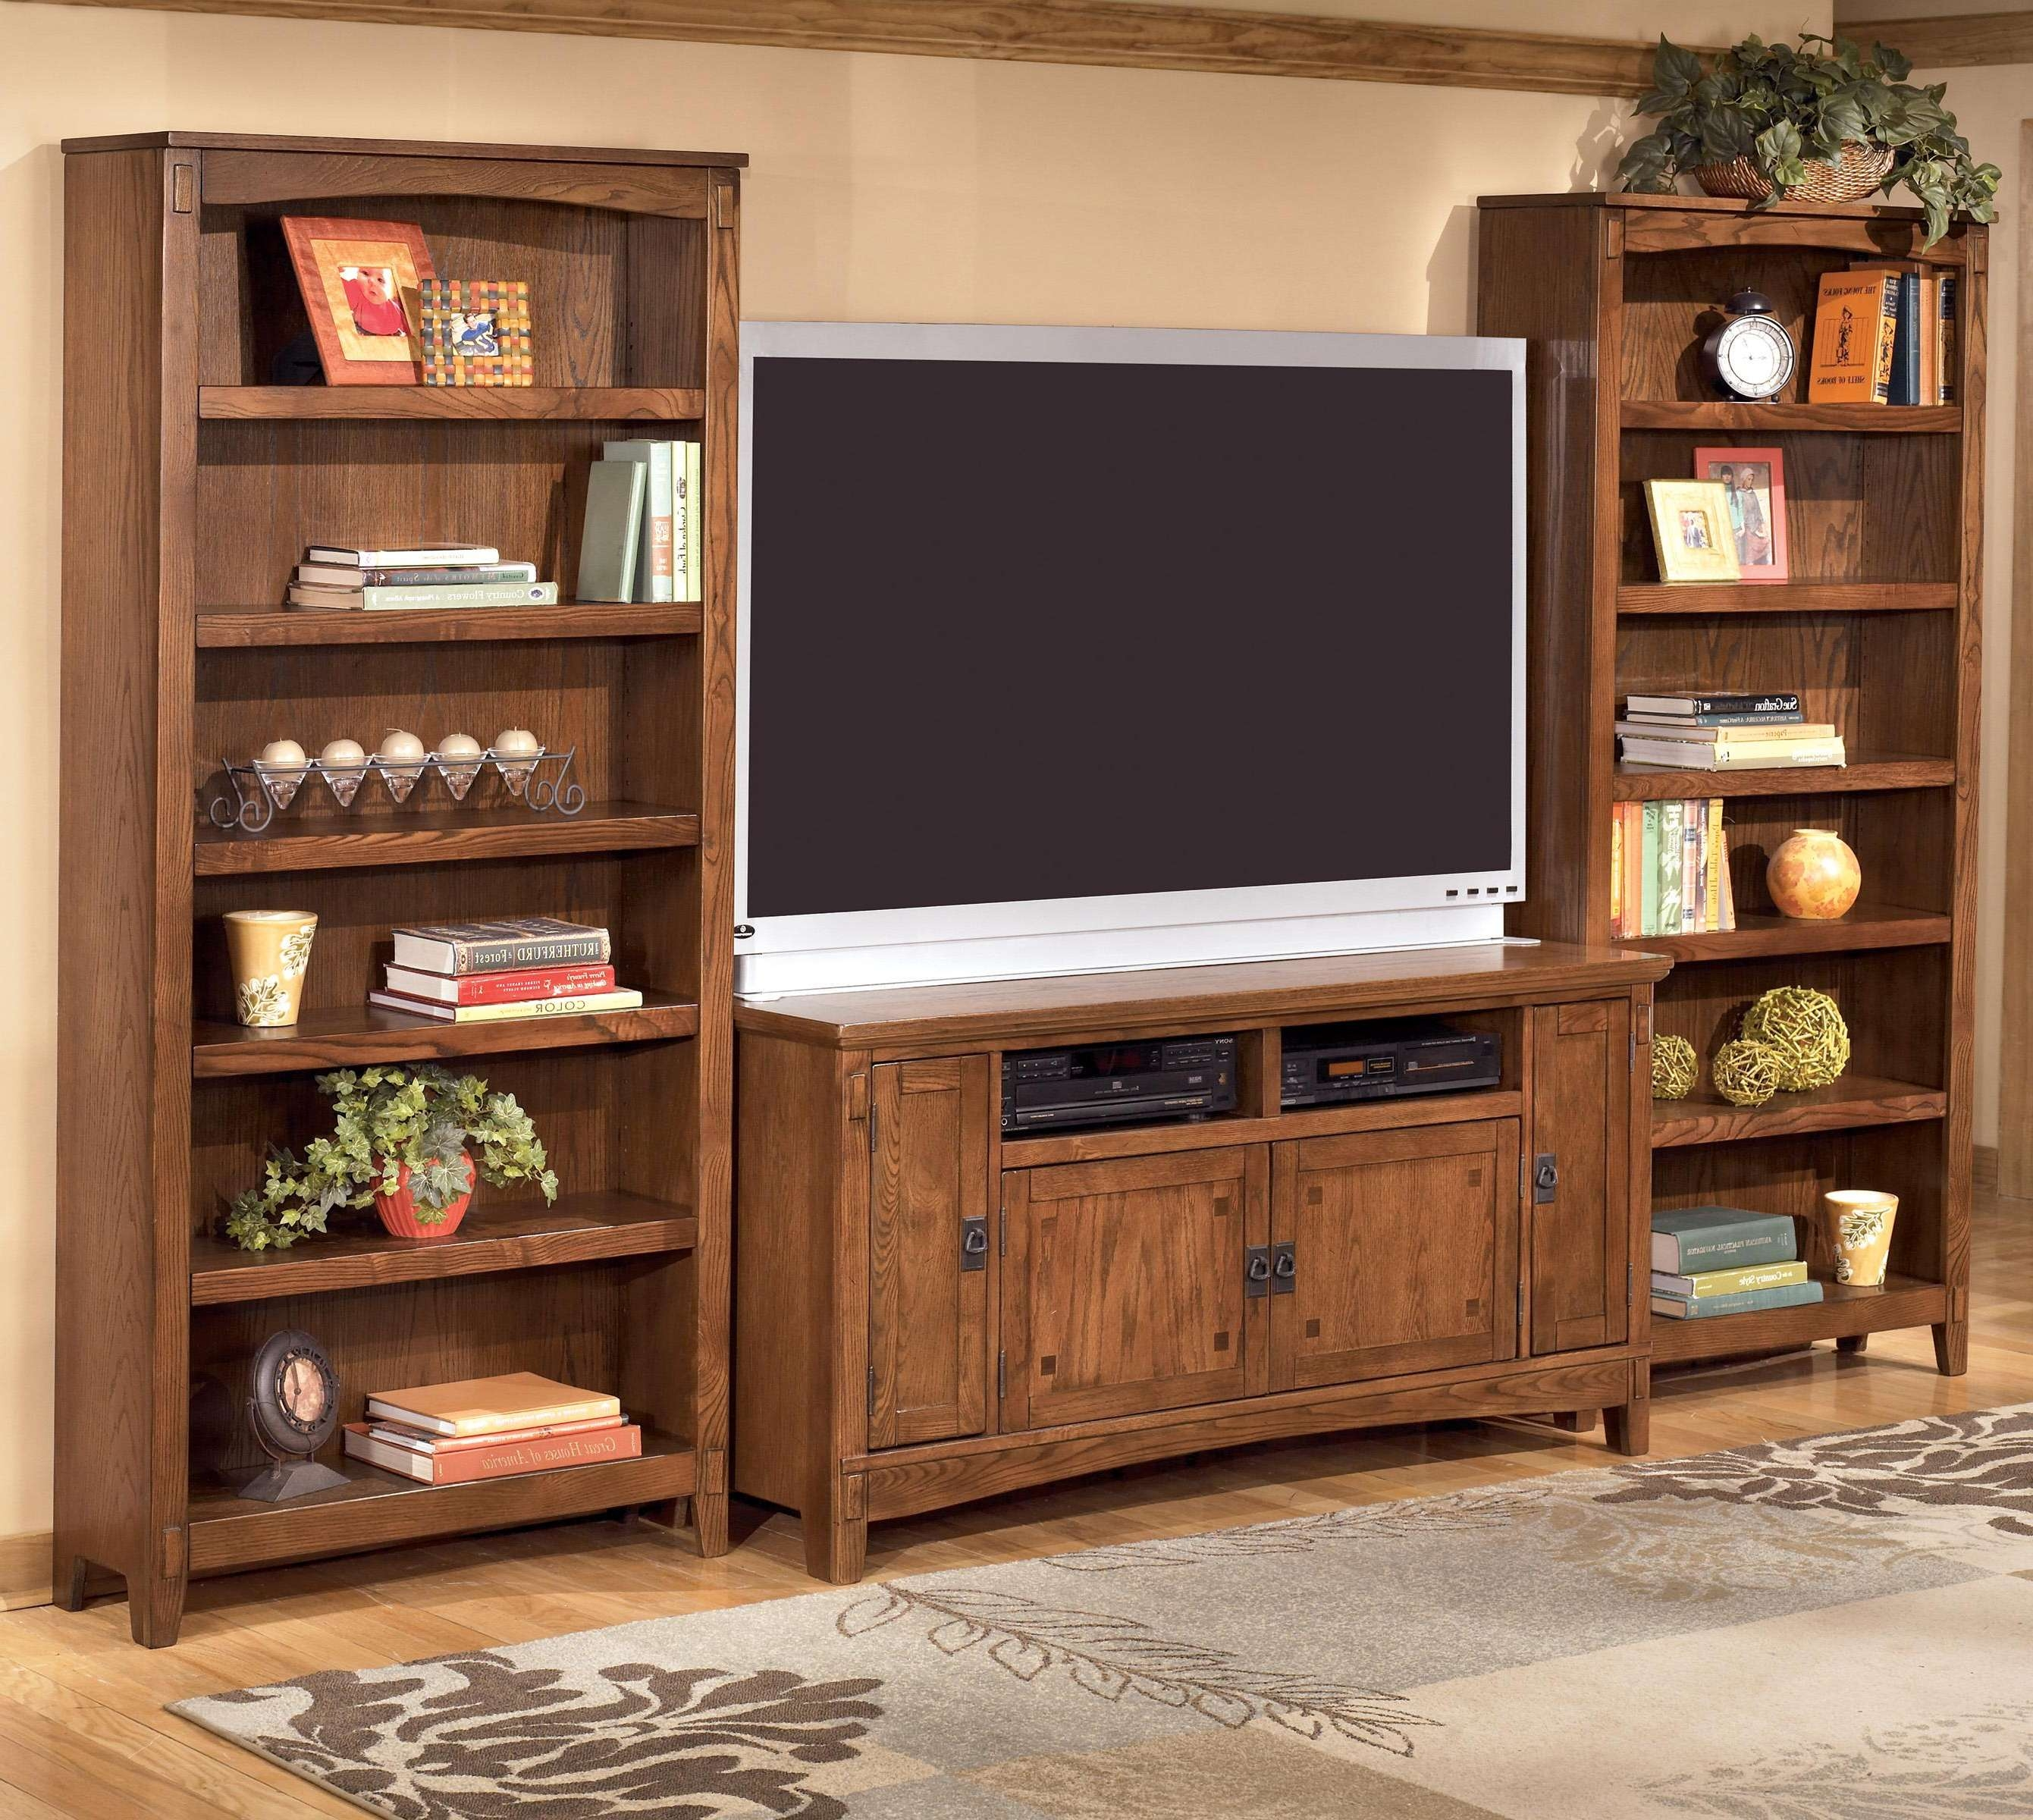 Wall Units: Amazing Tv Cabinet And Bookcase Tv Cabinet With Doors Within Bookshelf And Tv Stands (View 7 of 15)